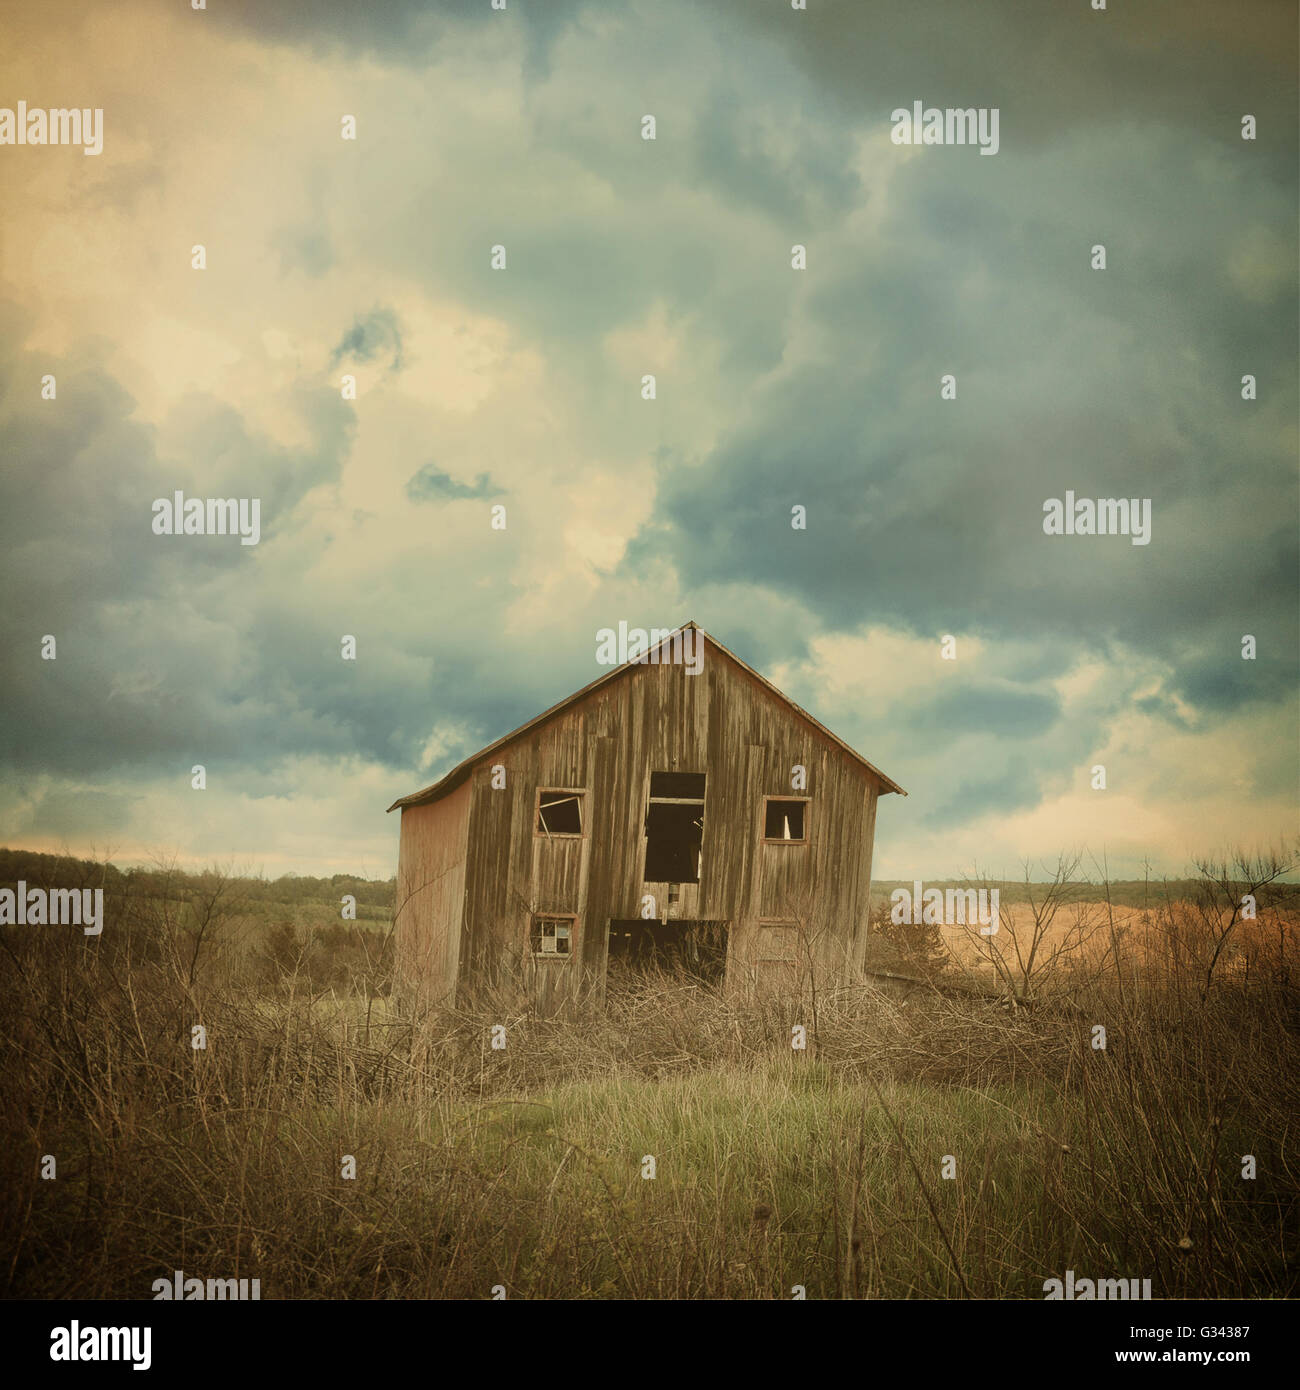 An old abandoned farm house is in the country with scary clouds in a field for a destruction, barn or scary concept. - Stock Image